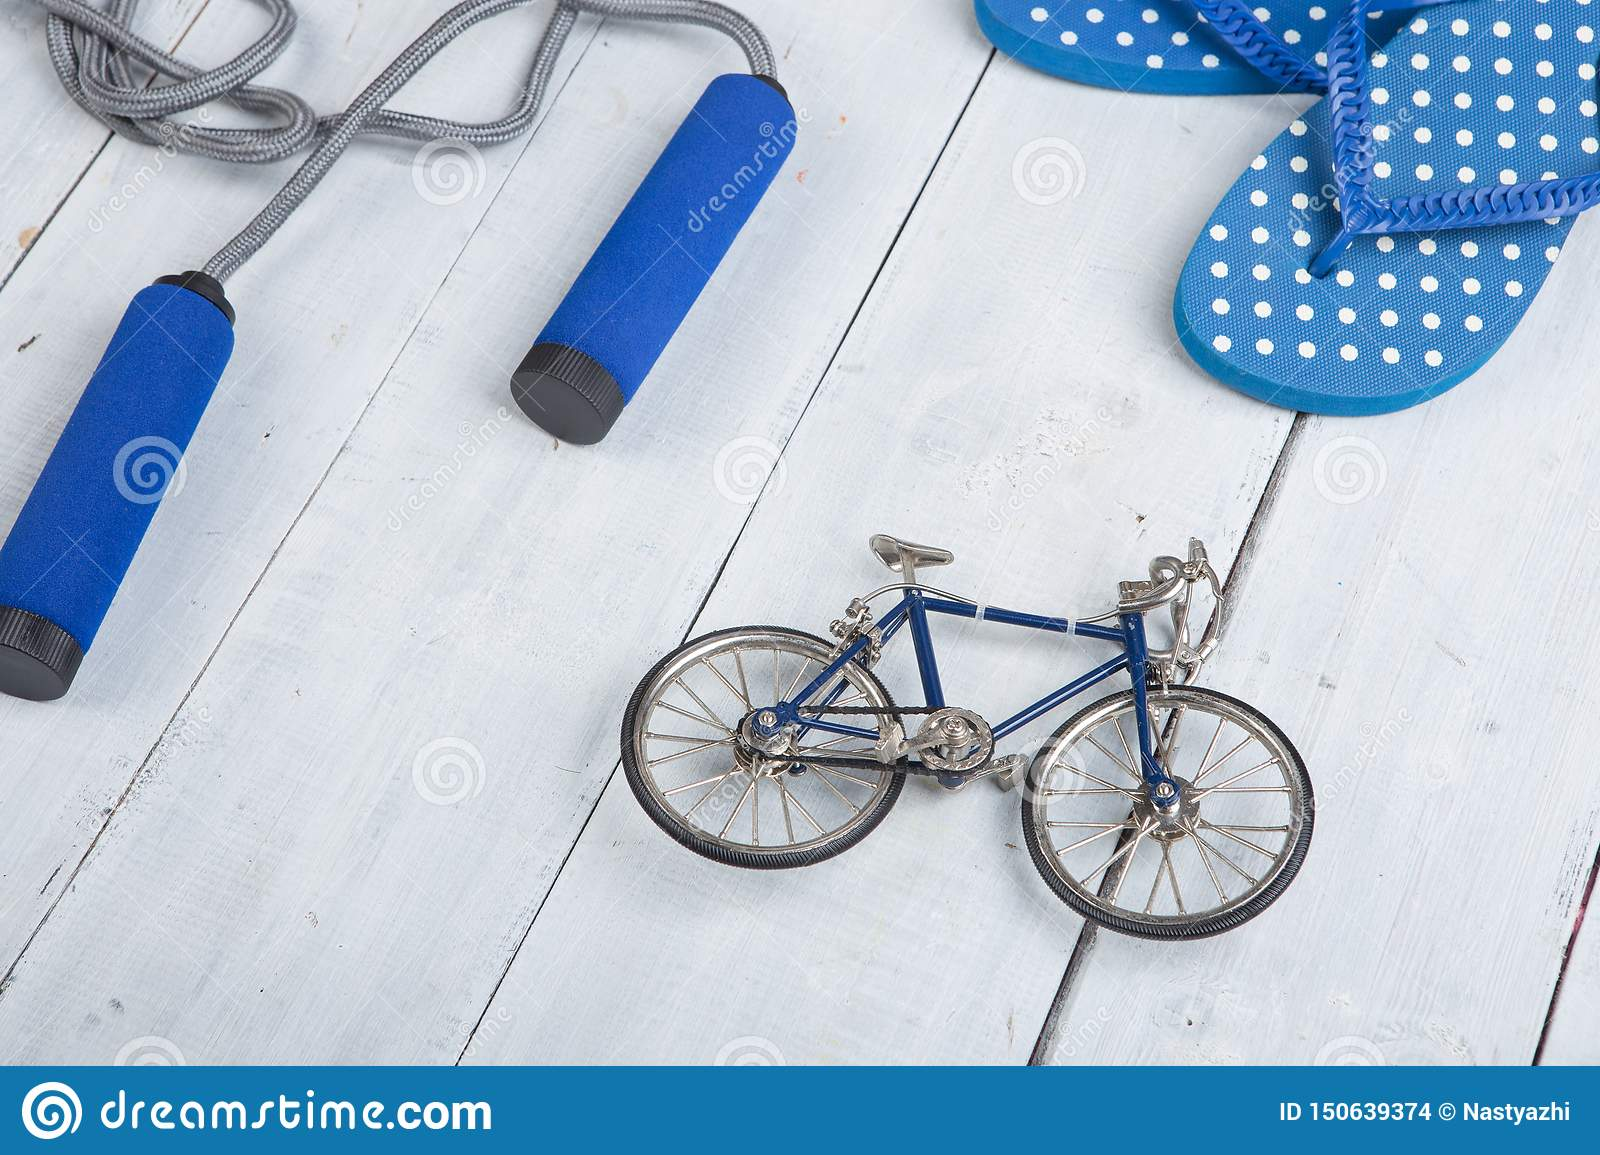 Fitness/sport and healthy lifestyle concept - Jumping/skipping rope with blue handles, flip flops in polka dots and model of